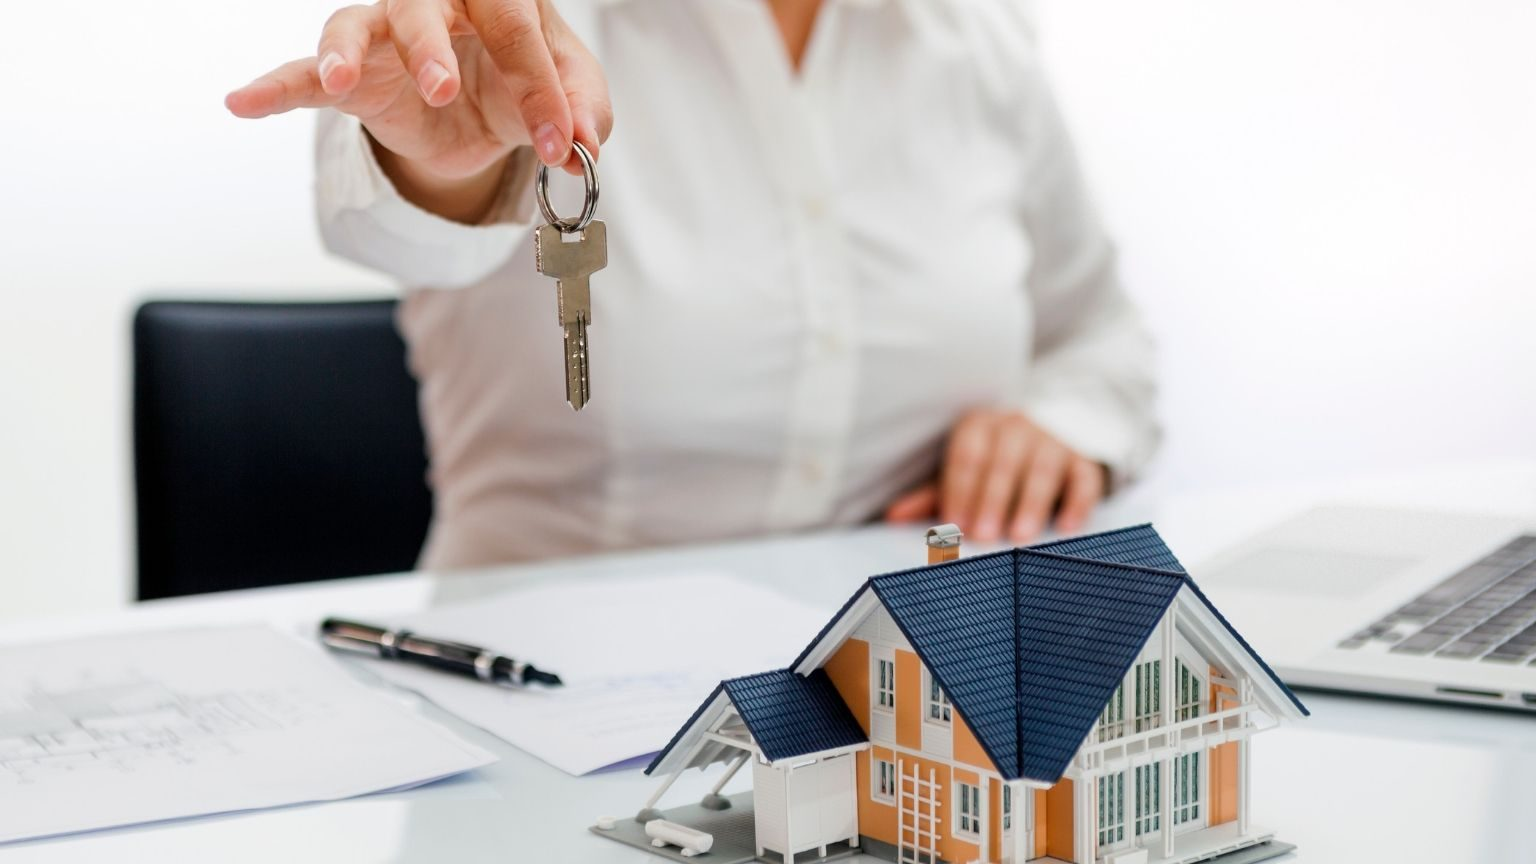 Real State Agent holding key with house model